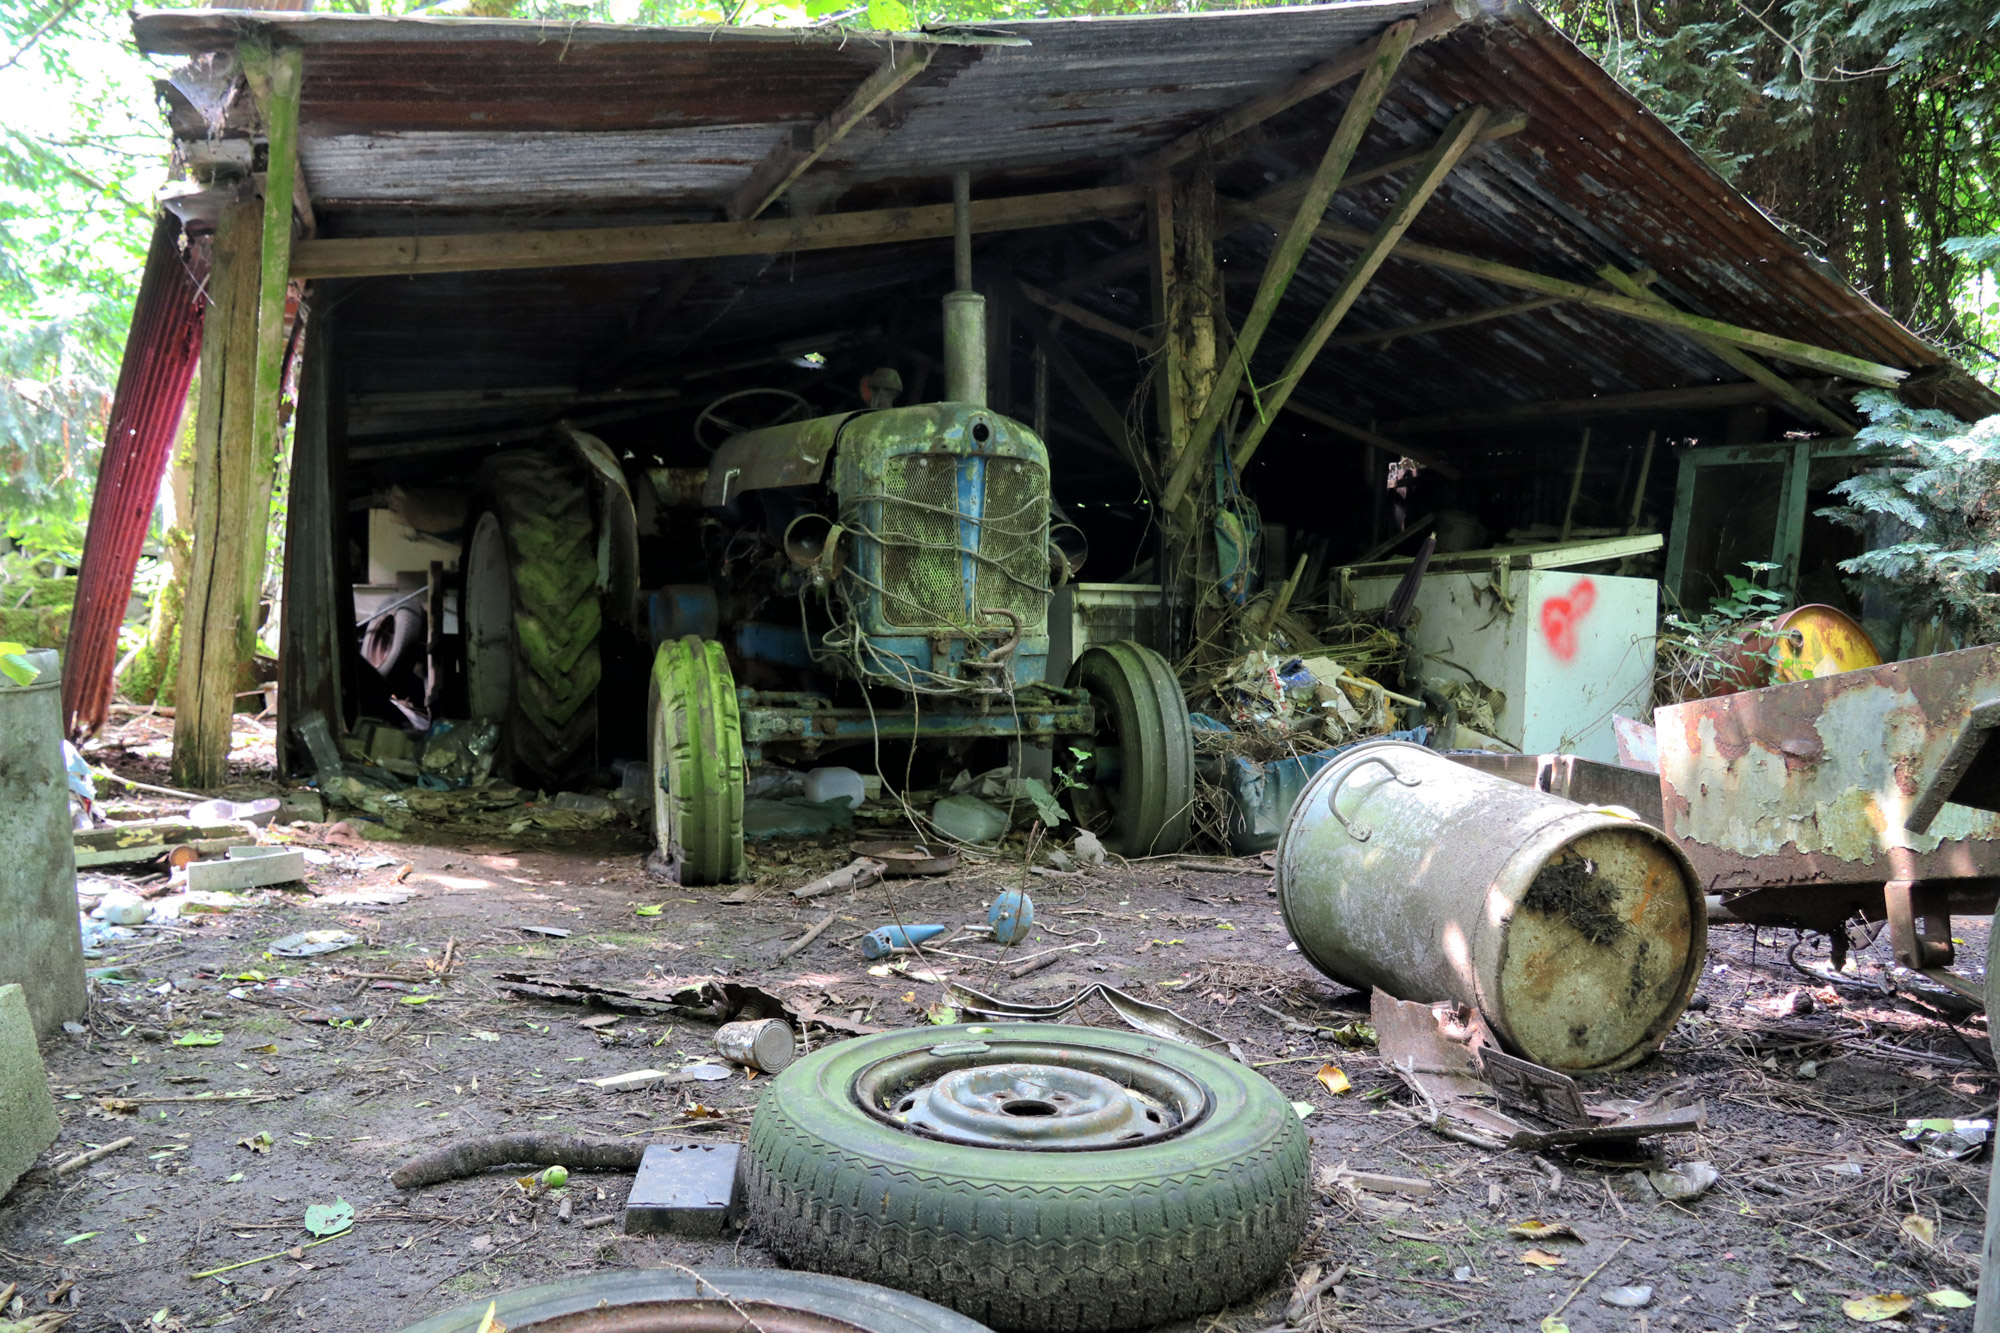 Urbex: Lost in the woods